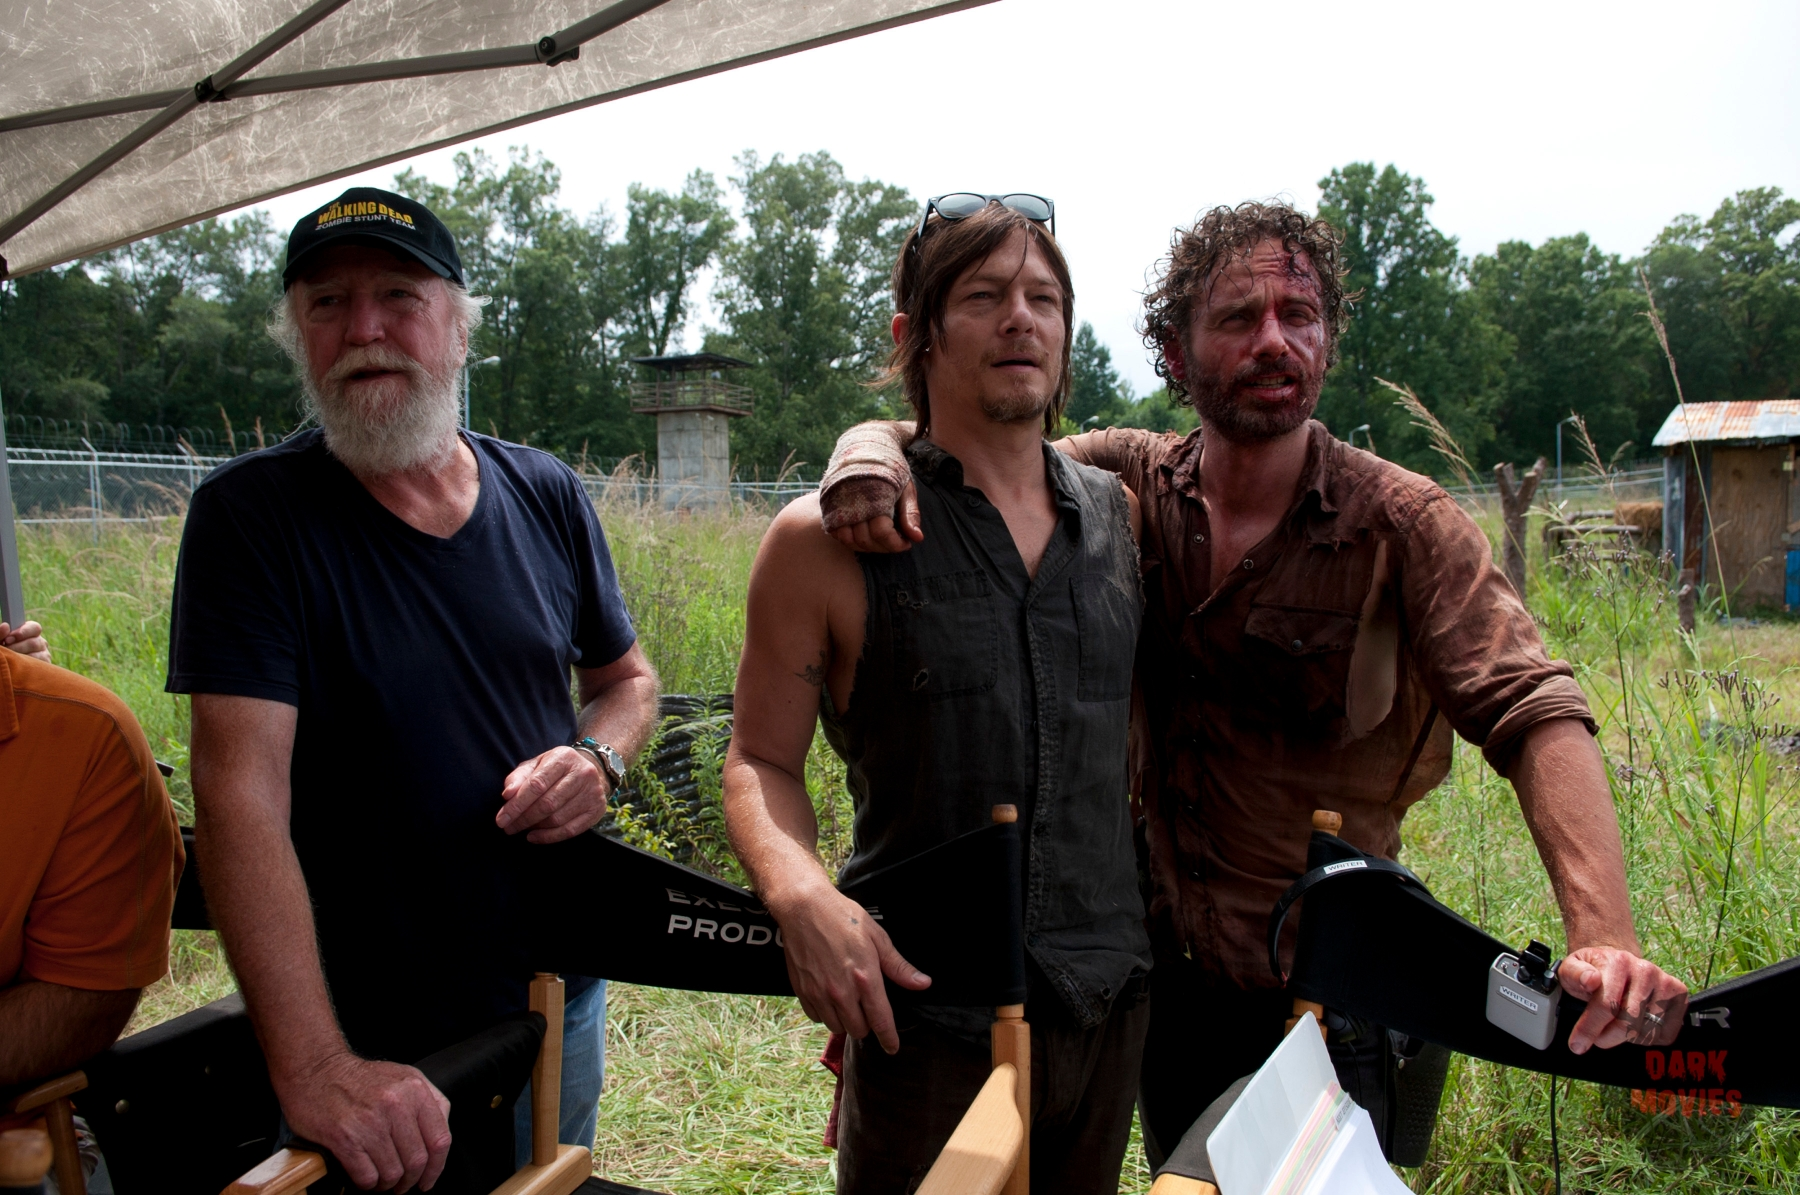 Hershel Greene (Scott Wilson), Daryl Dixon (Norman Reedus) and Rick Grimes (Andrew Lincoln) - The Walking Dead _ Season 4, Episode 8 _ BTS - Photo Credit: Gene Page/AMC